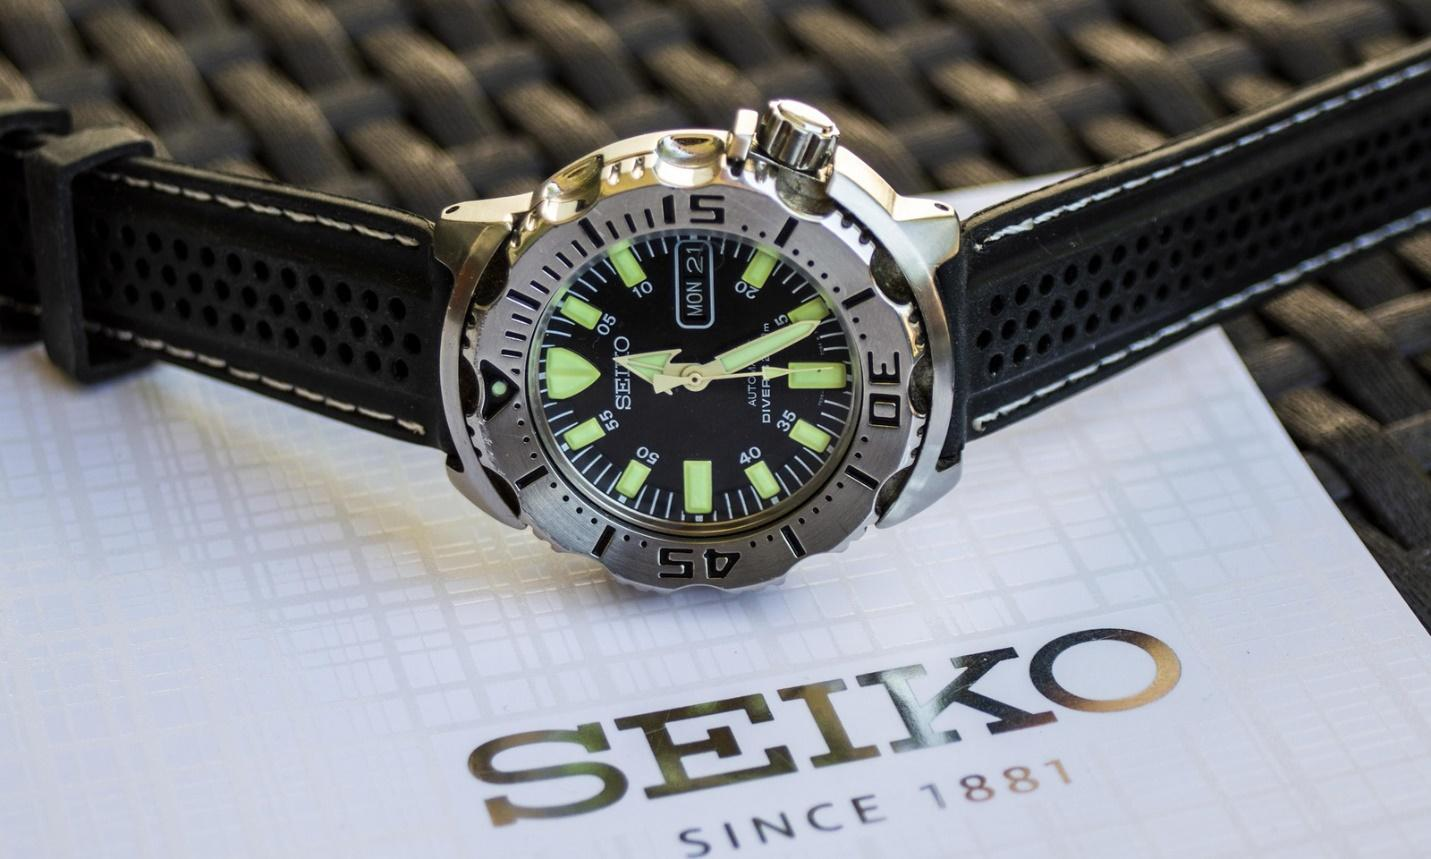 C:\Users\User\Desktop\seiko.jpg